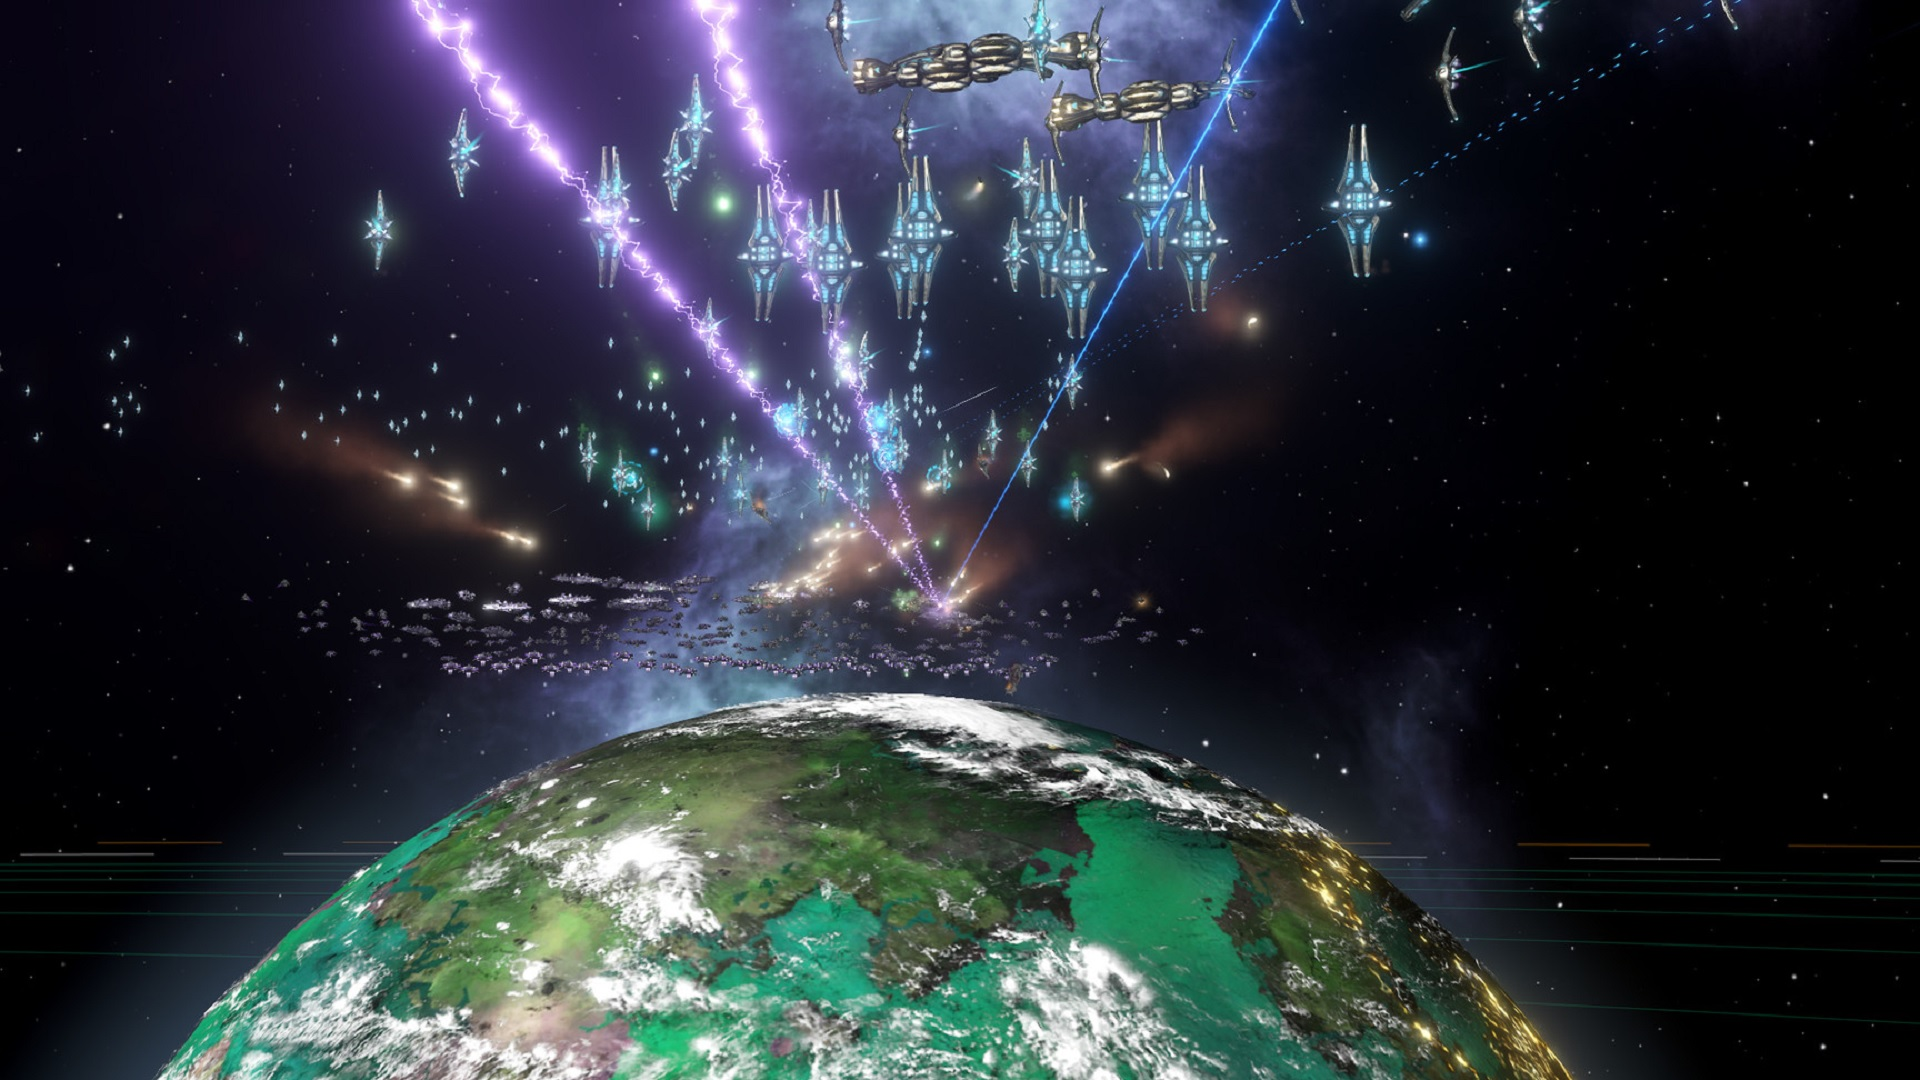 Stellaris 3.0 'Dick' patch notes – planets rework, intel and many, many bug fixes